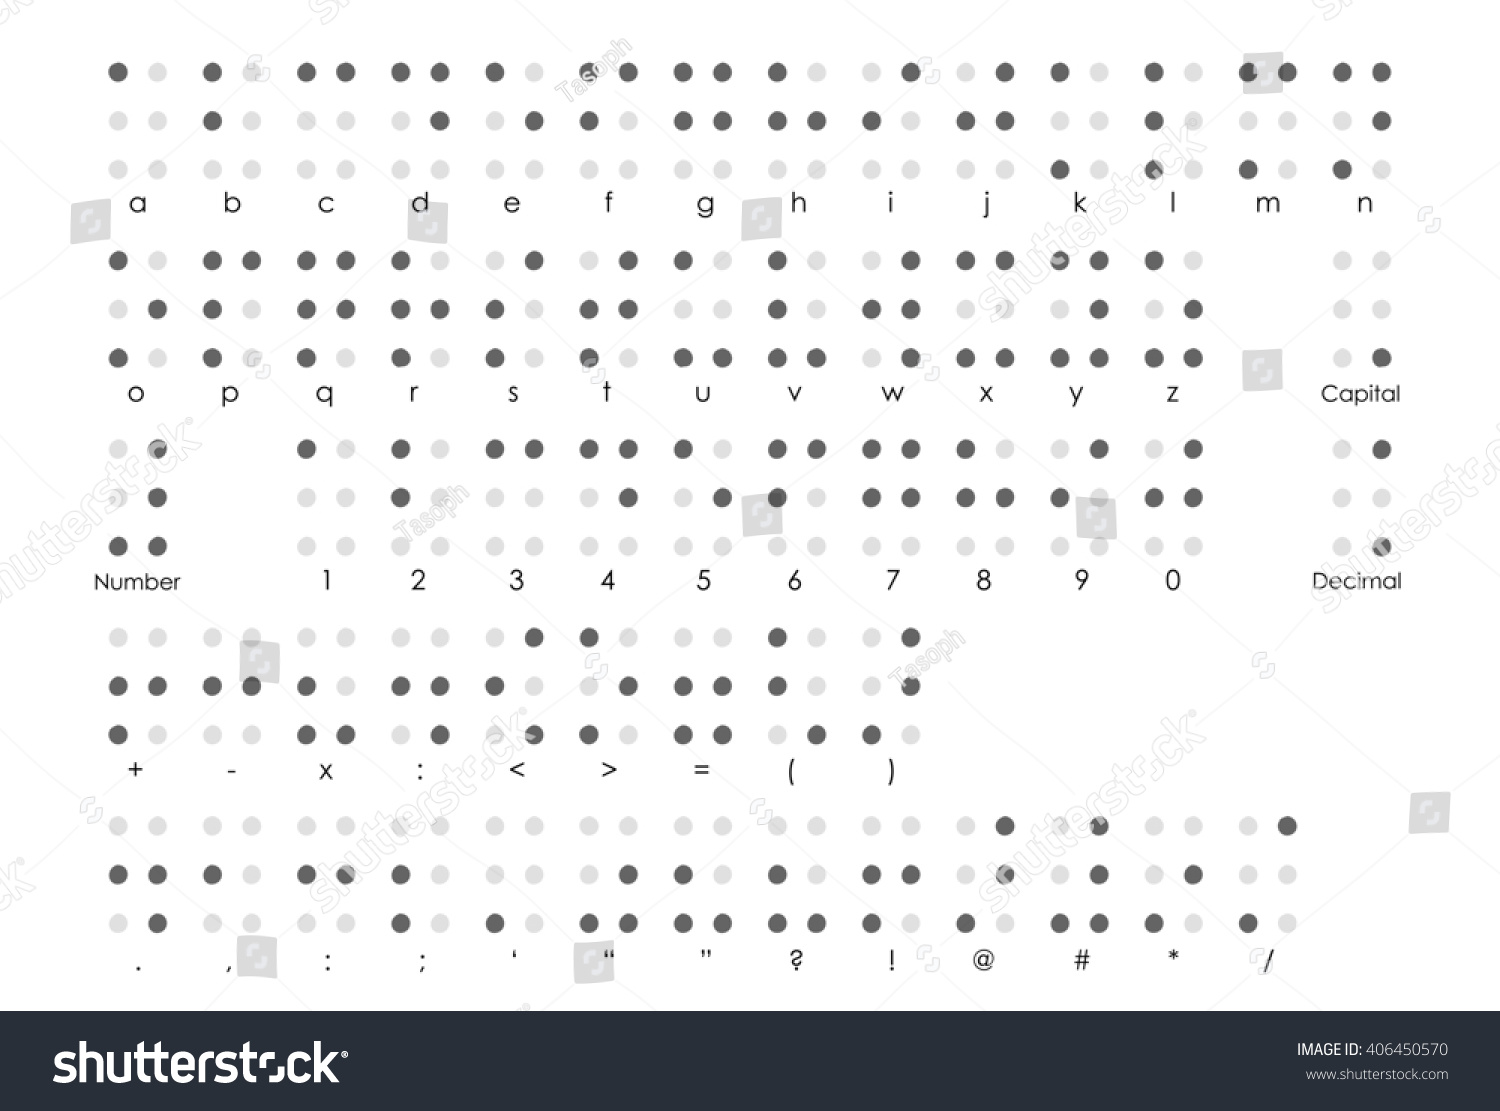 Royalty free braille alphabet with braille numbers 406450570 braille alphabet with braille numbers braille punctuation and braille symbols fonts and code buycottarizona Choice Image